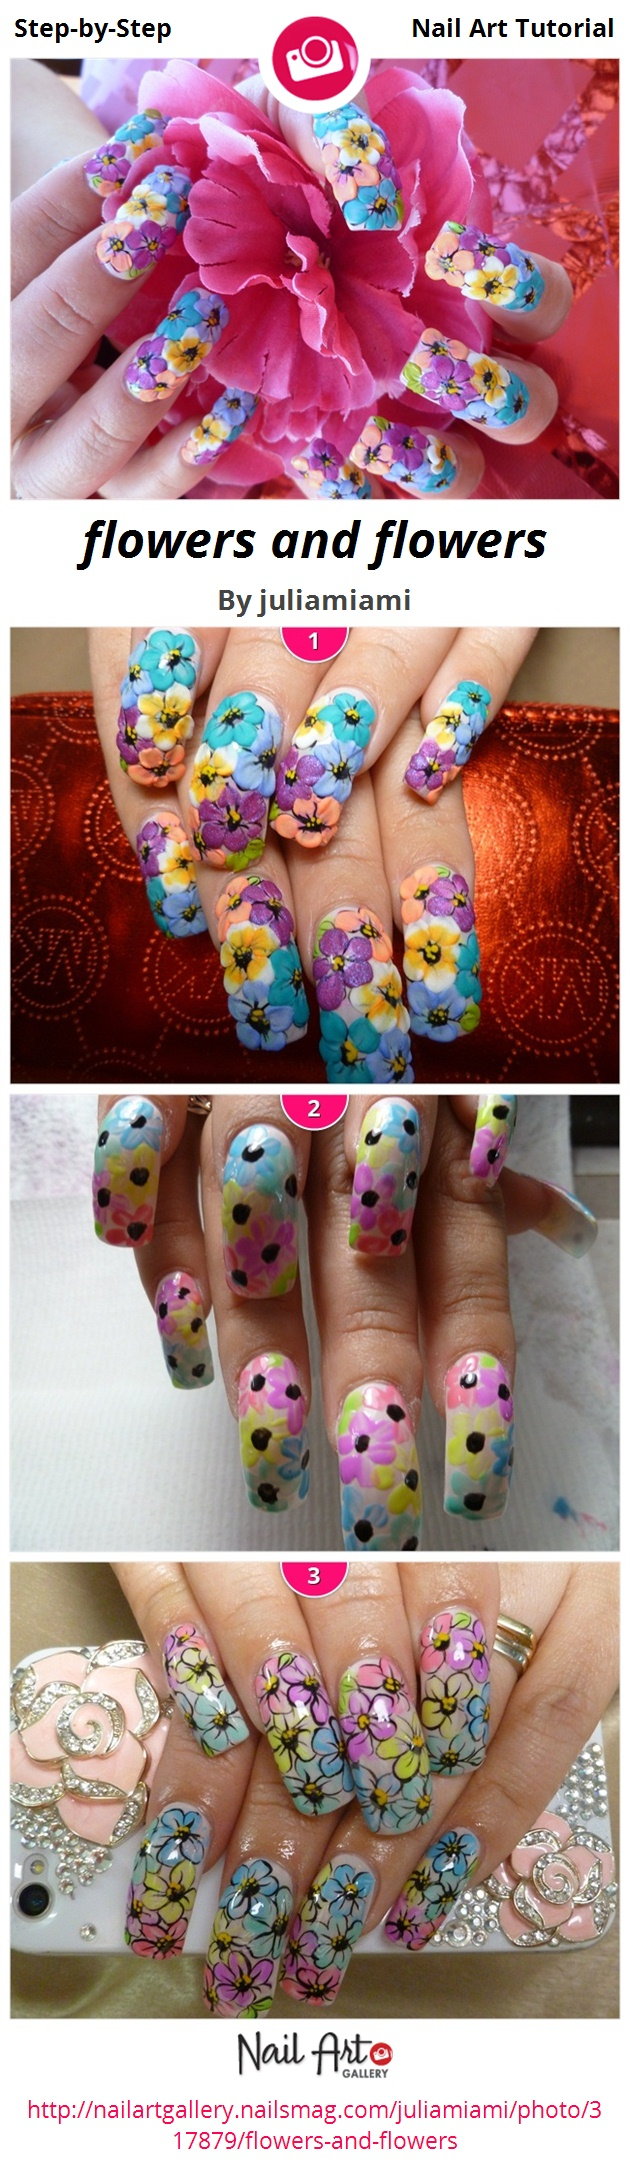 flowers and flowers - Nail Art Gallery